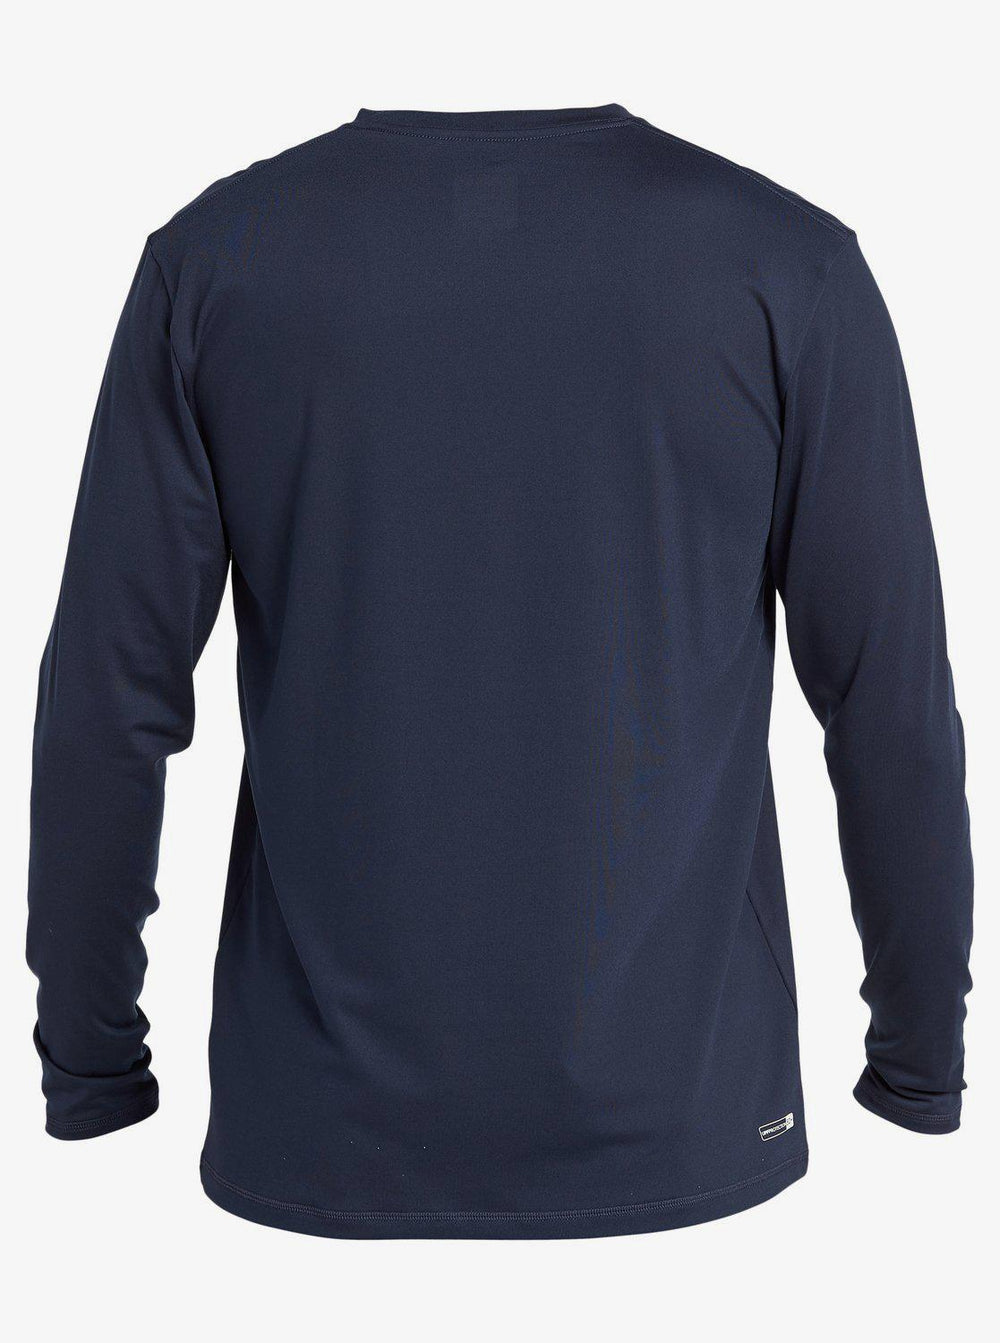 Solid Streak Long Sleeve UPF 50 Surf T-Shirt